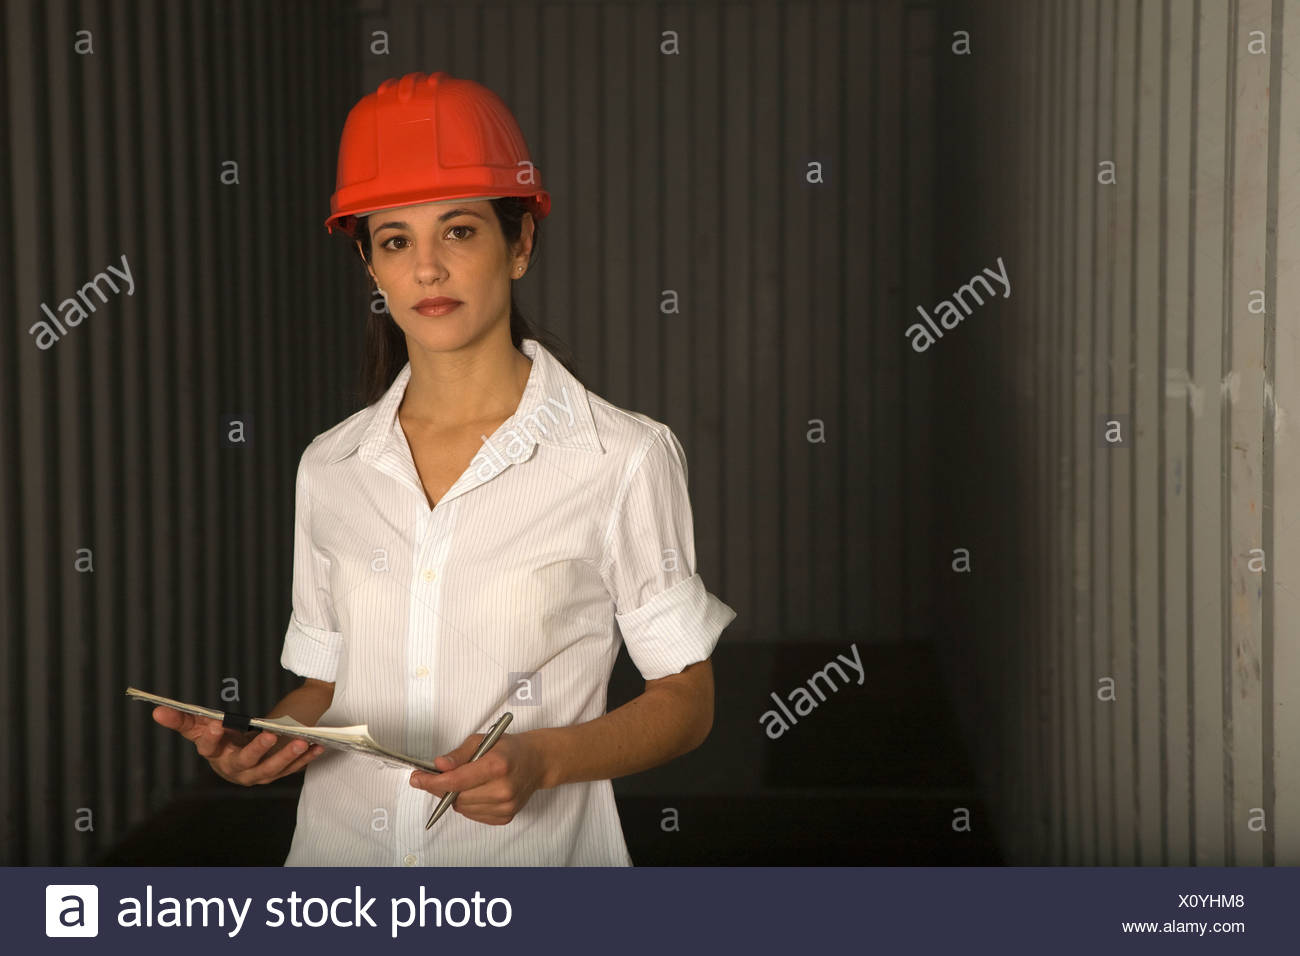 Portrait of a dock worker standing with a clipboard at a commercial dock - Stock Image